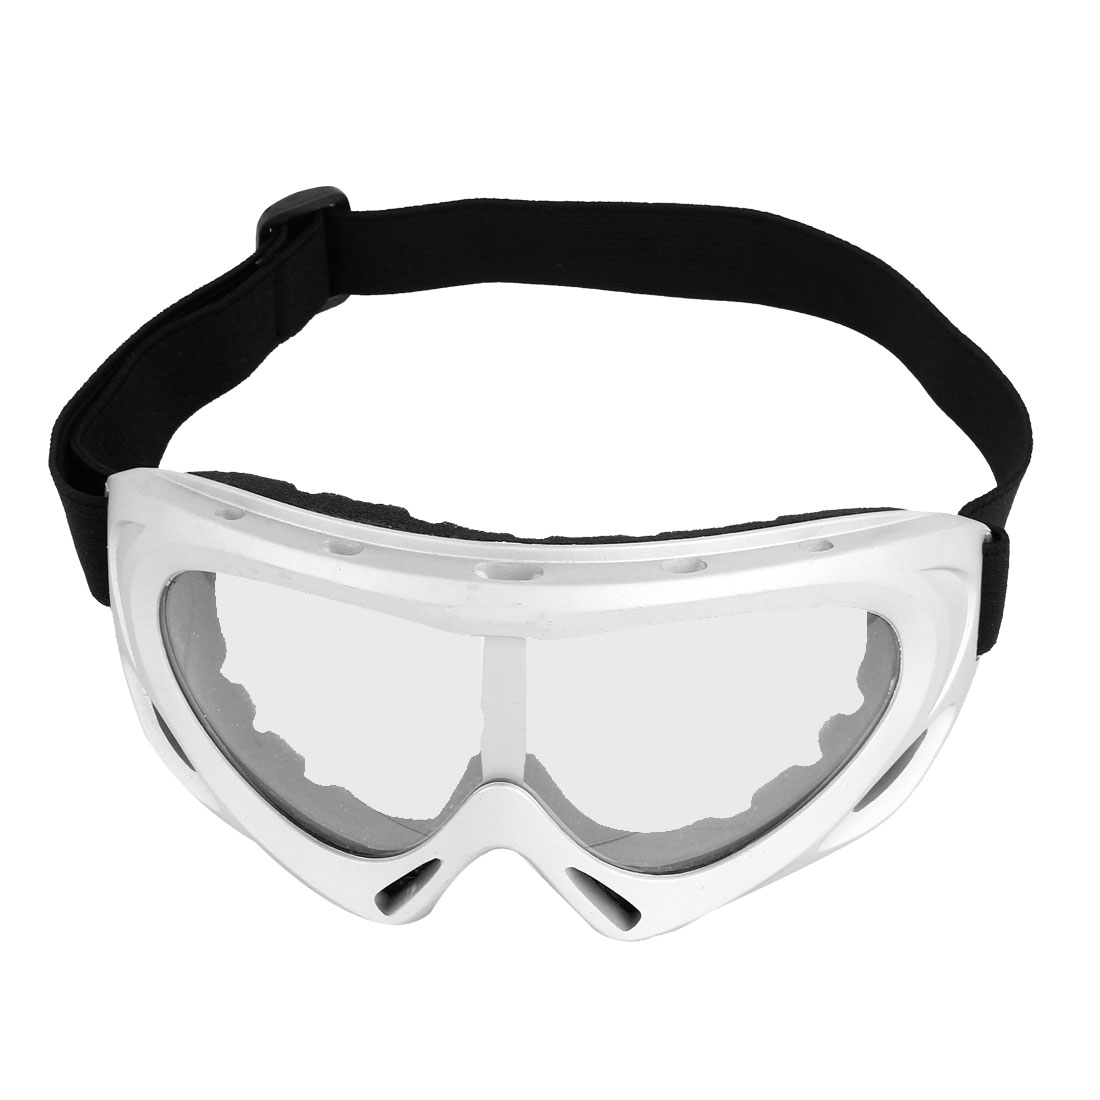 Stretchy Strap Clear Lens Ski Motorcycle Goggles Glasses Silver Gray